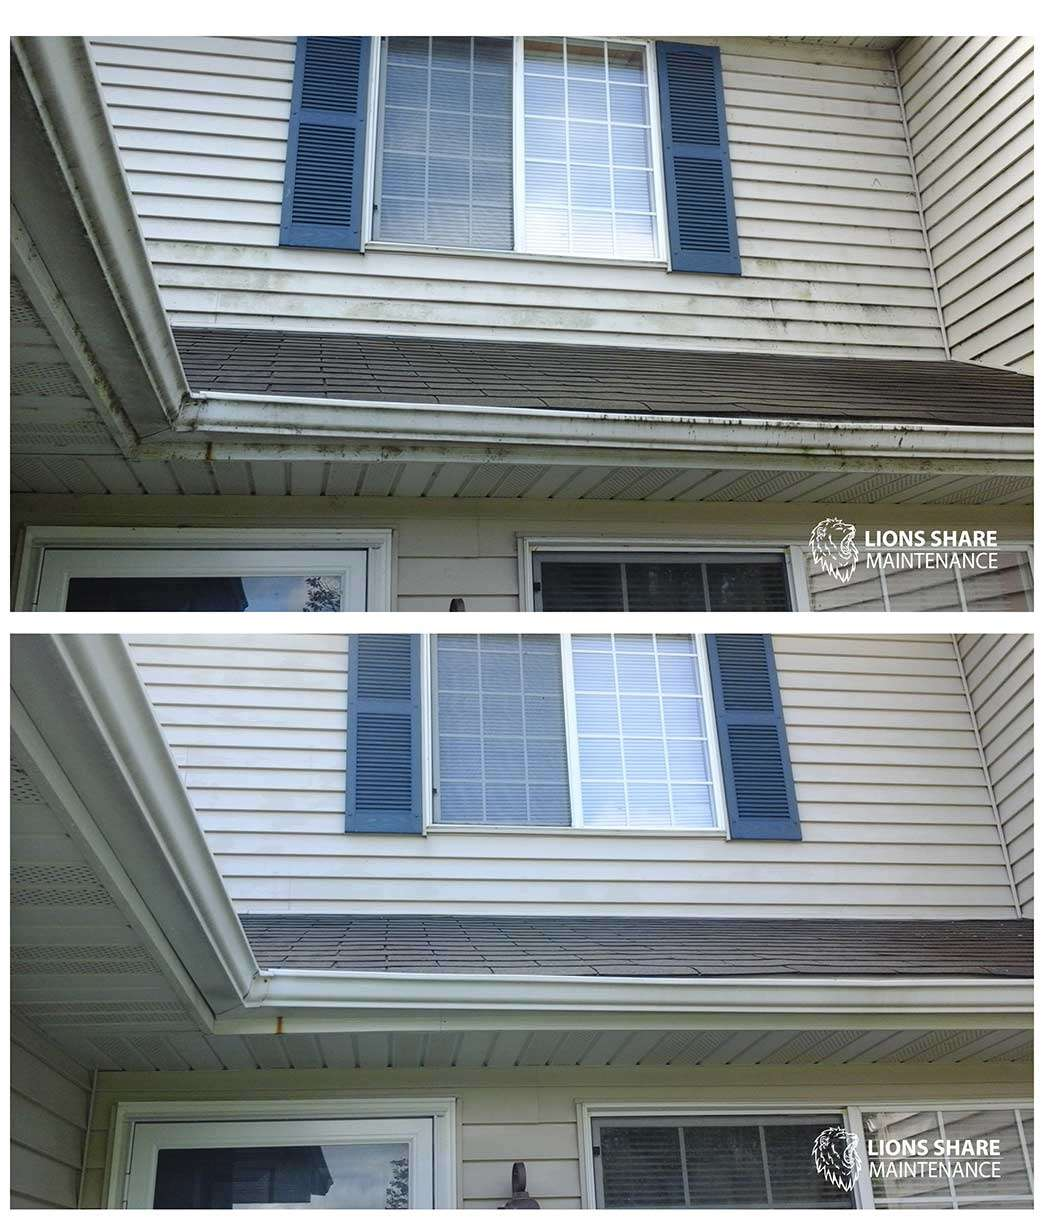 Siding Cleaning - Lions Share Maintenance